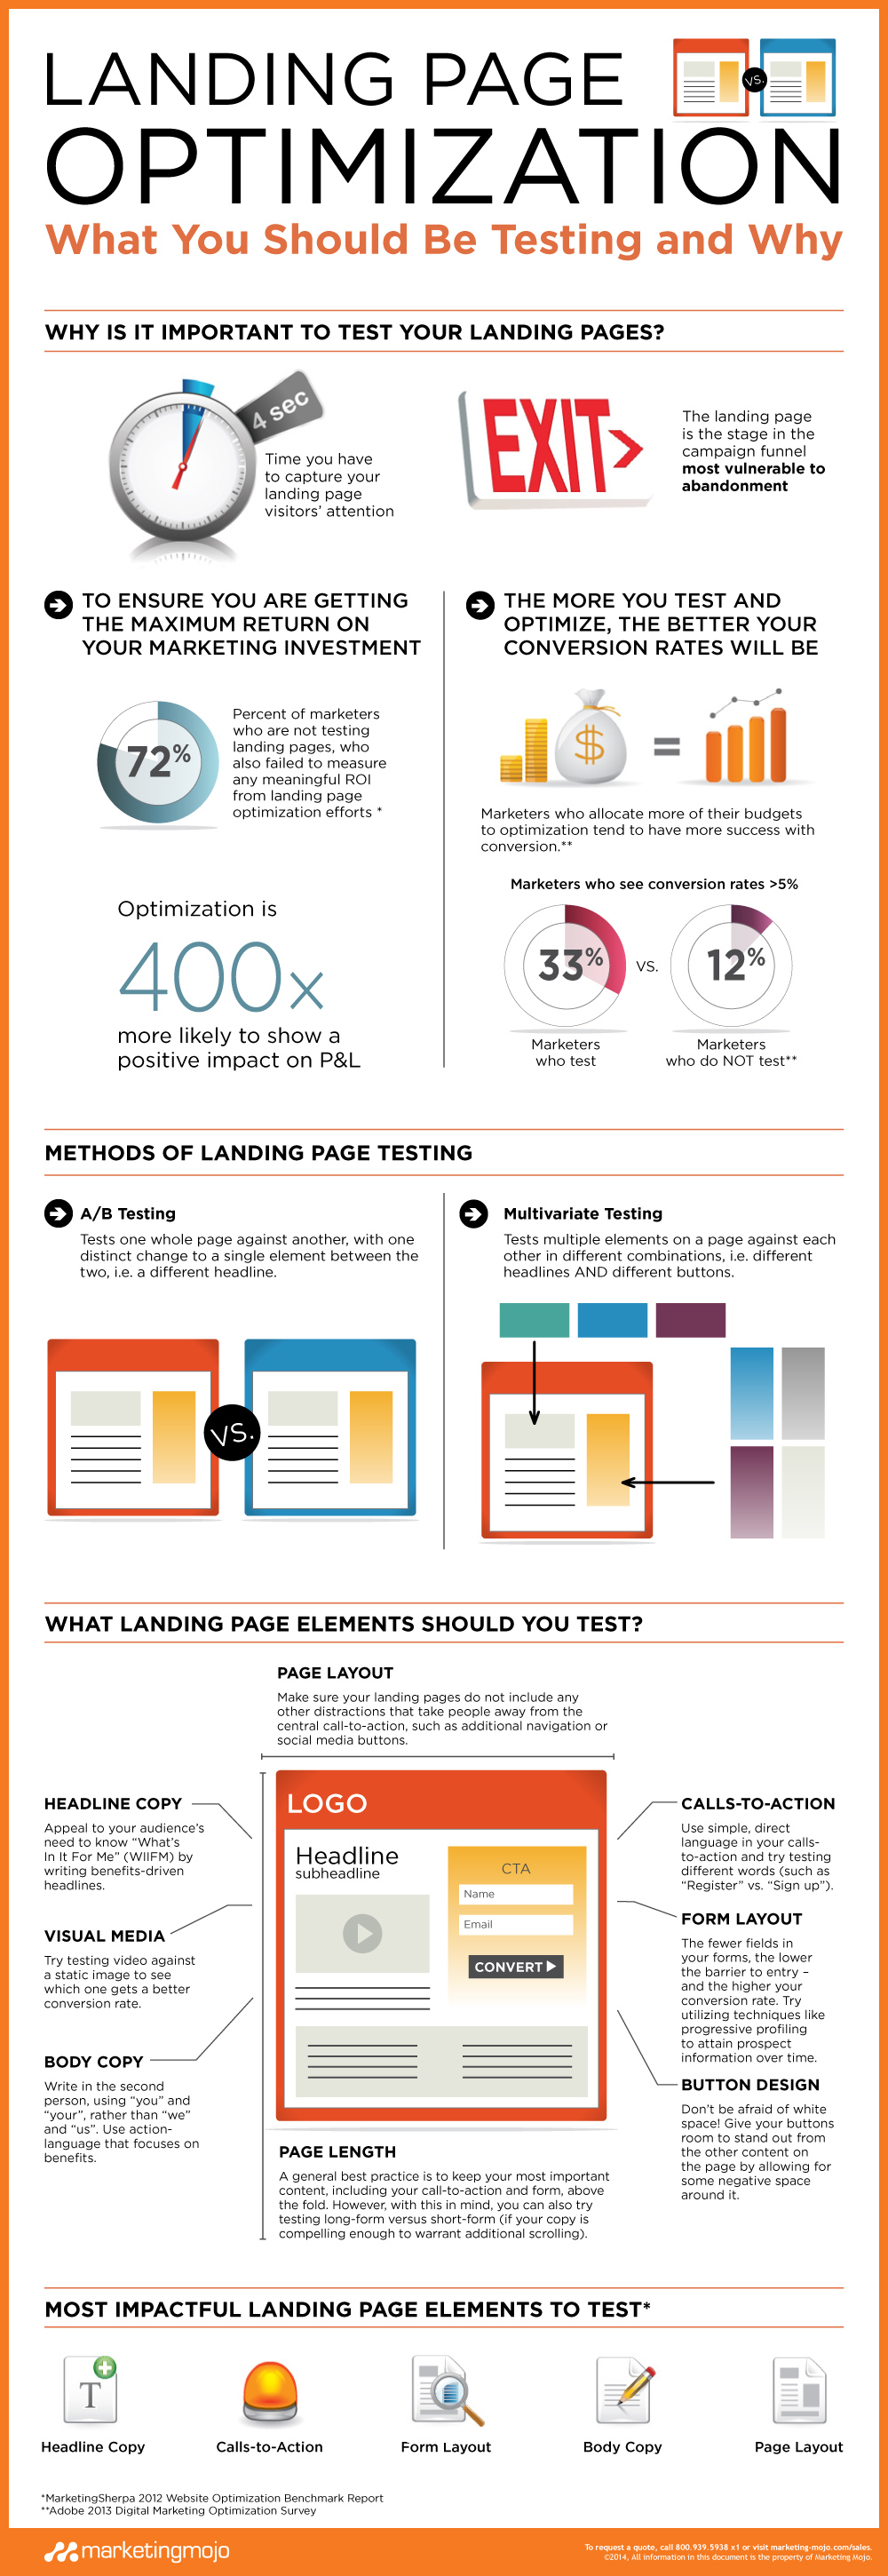 Marketing-Mojo_Landing_Page_Optimization_Infographic